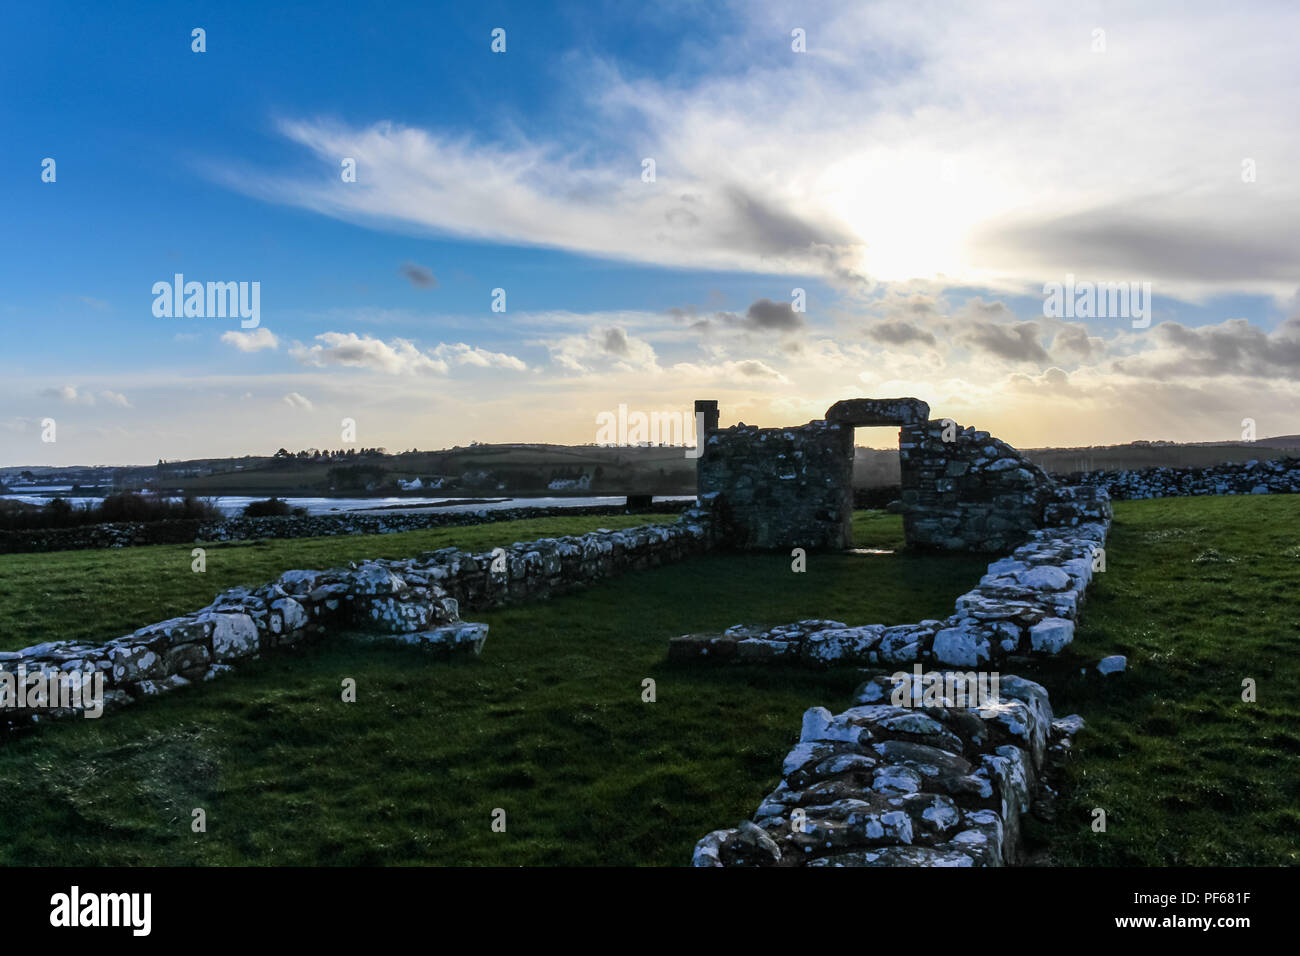 Old ruins of Nendrum Monastry, Mahee Island, County Down, N.Ireland. - Stock Image